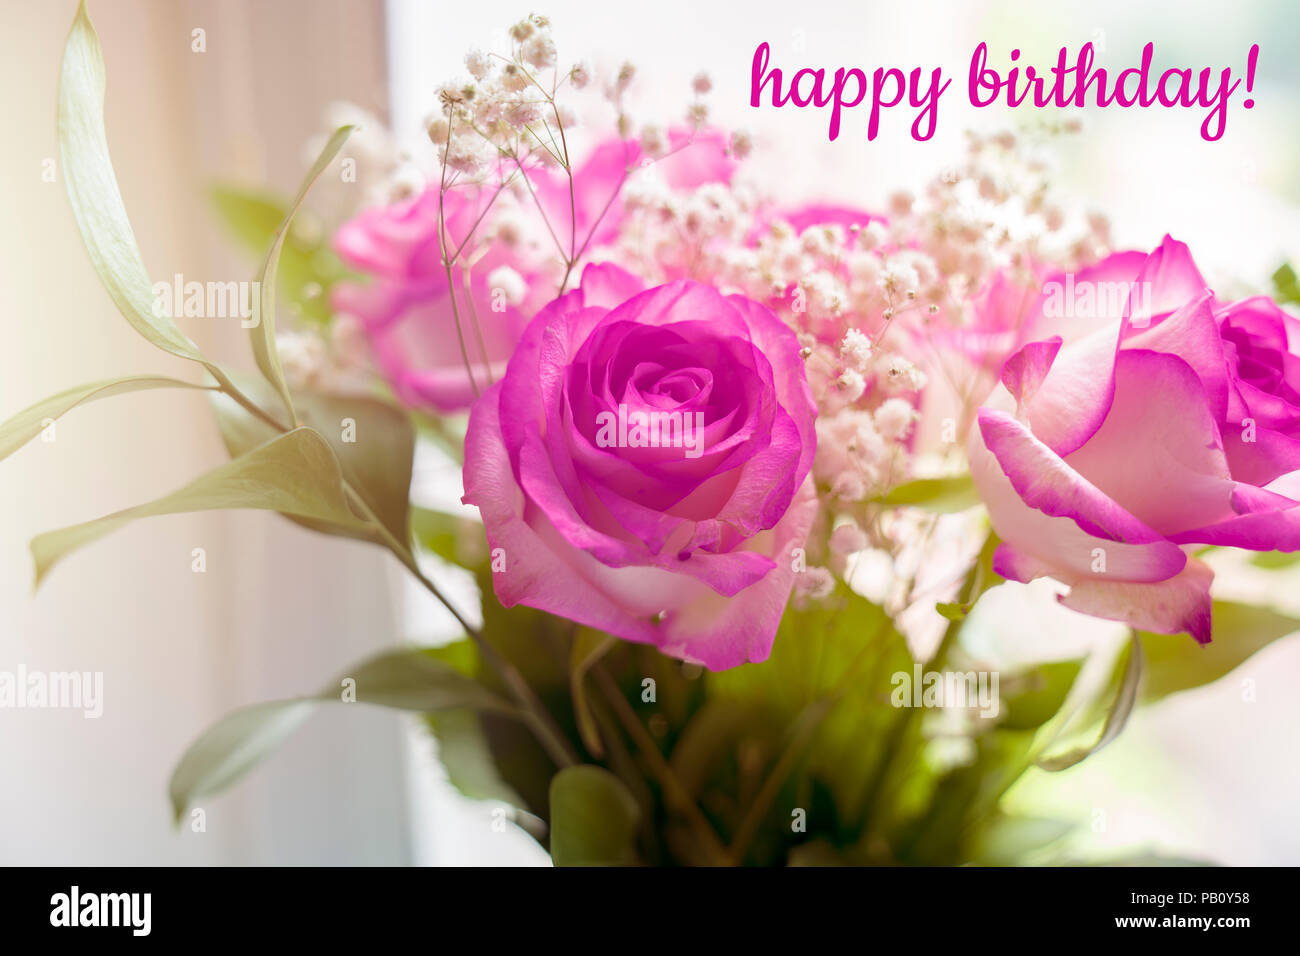 Beautiful Bouquet Of Roses On A Window With The Text Happy Birthday